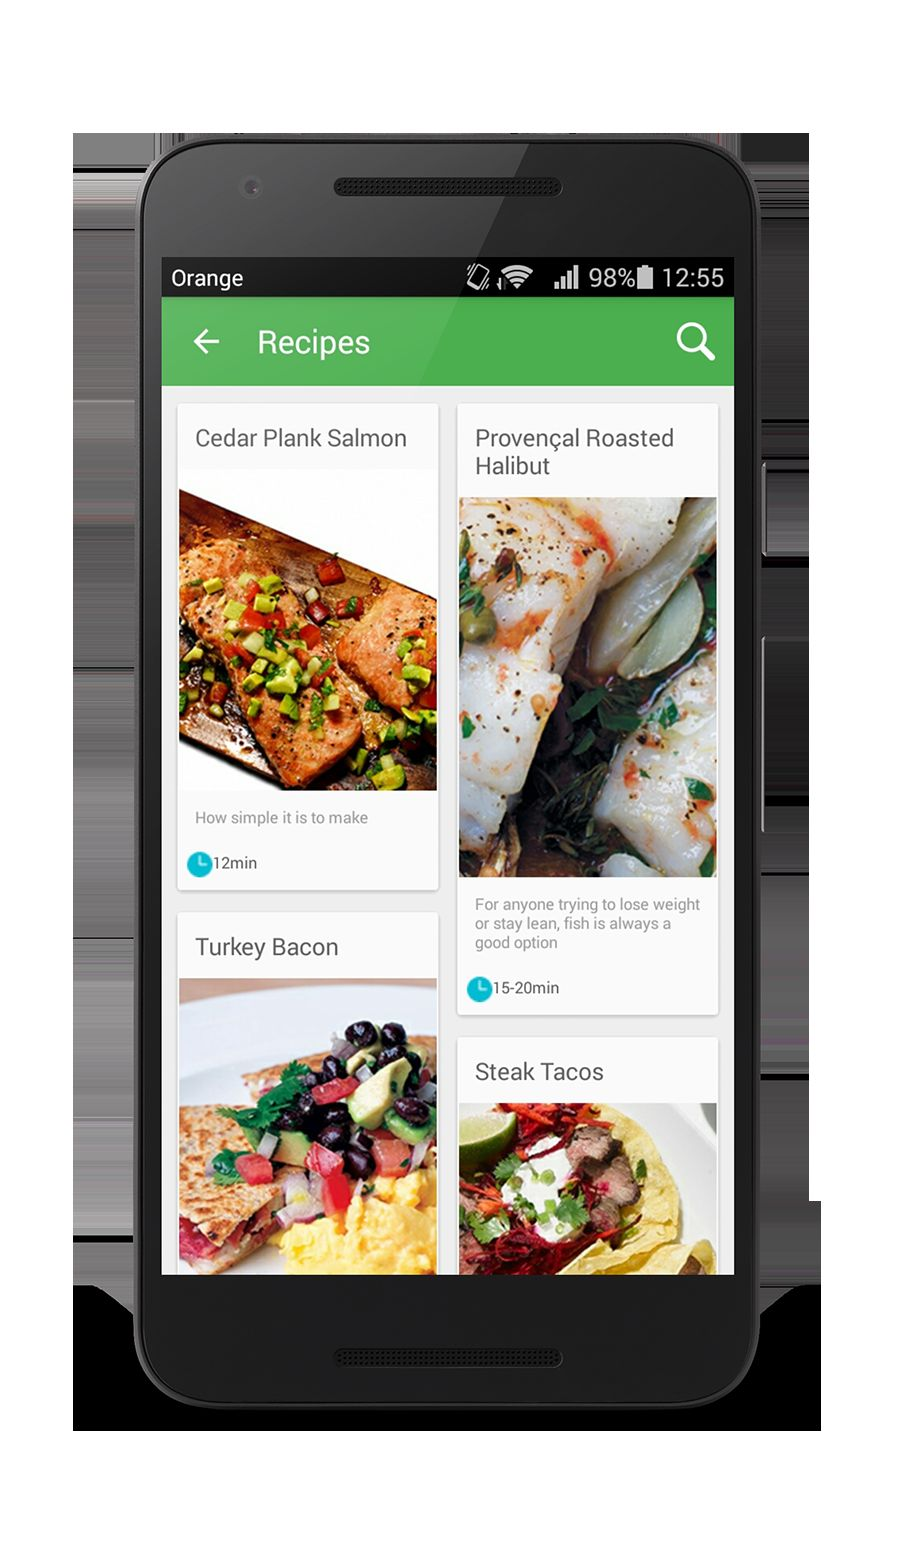 Worcipe android recipe app source code food app templates for worcipe android recipe app source code screenshot 10 forumfinder Image collections